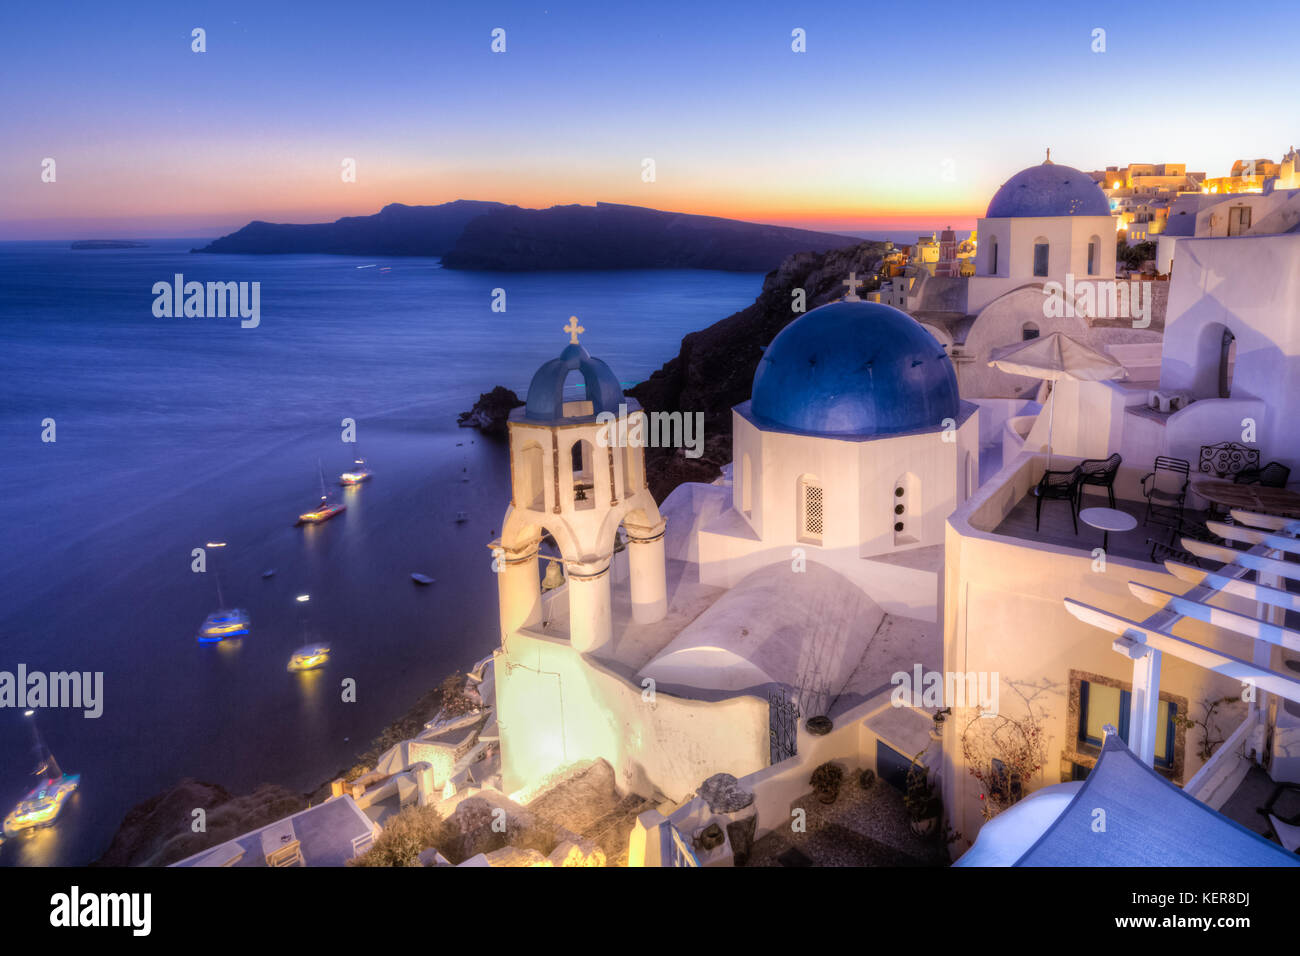 Traditional greek village of Oia at dusk, Santorini island, Greece. - Stock Image